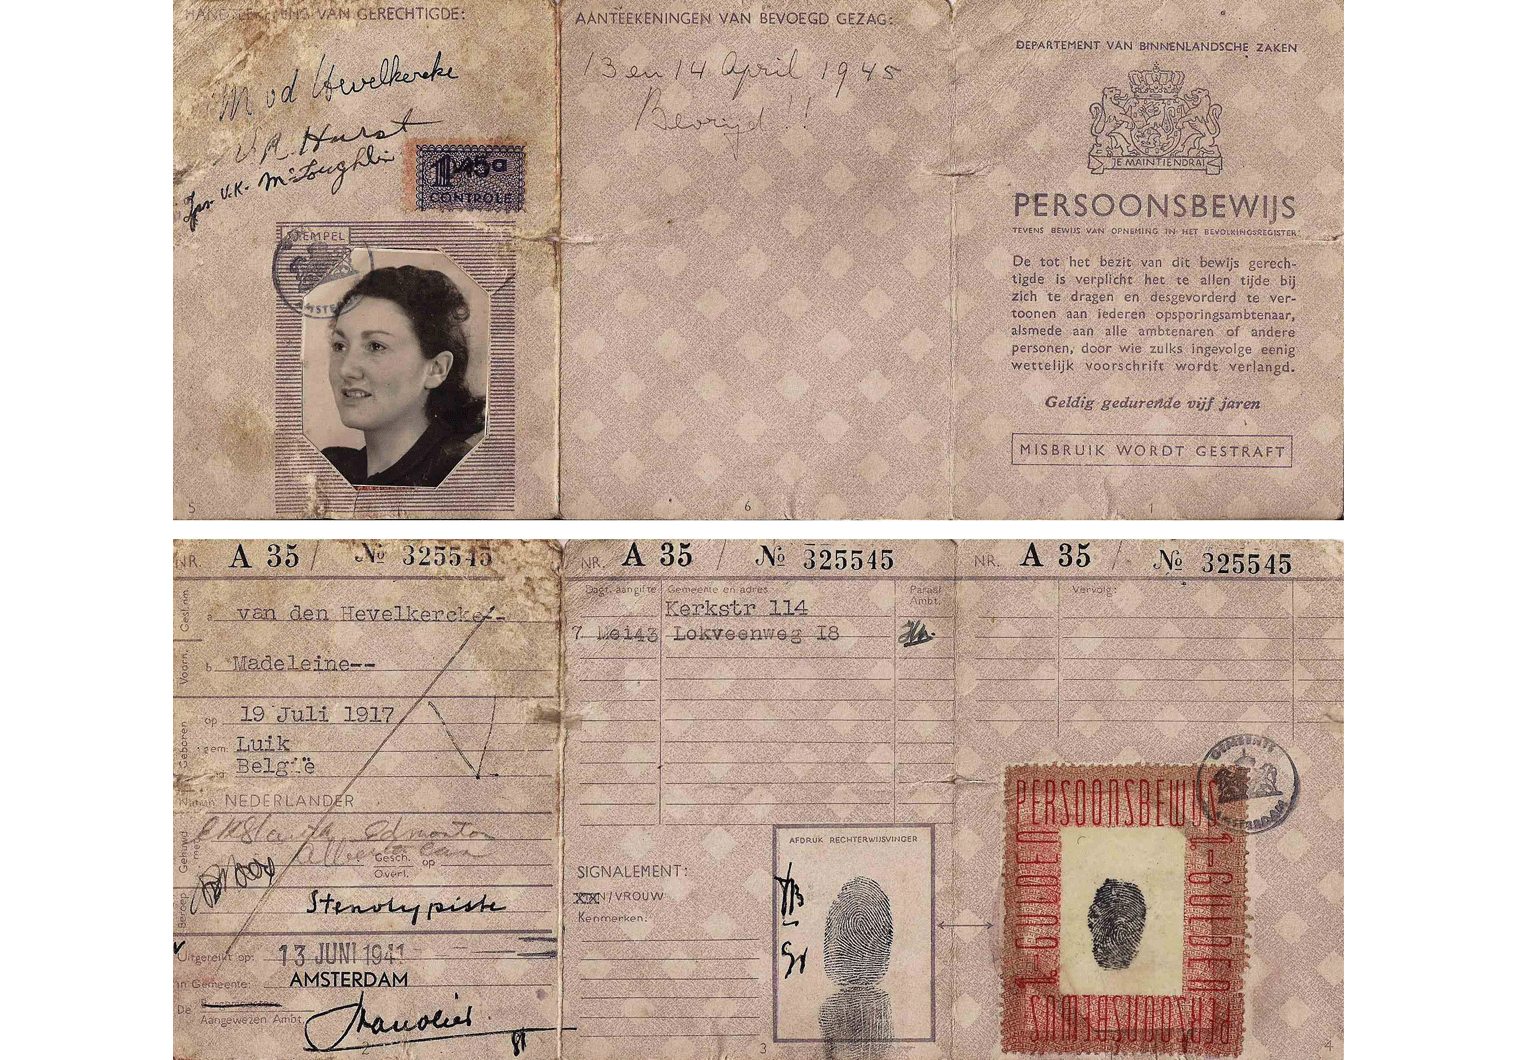 WW2 fake Dutch resistance identity document for a Jew